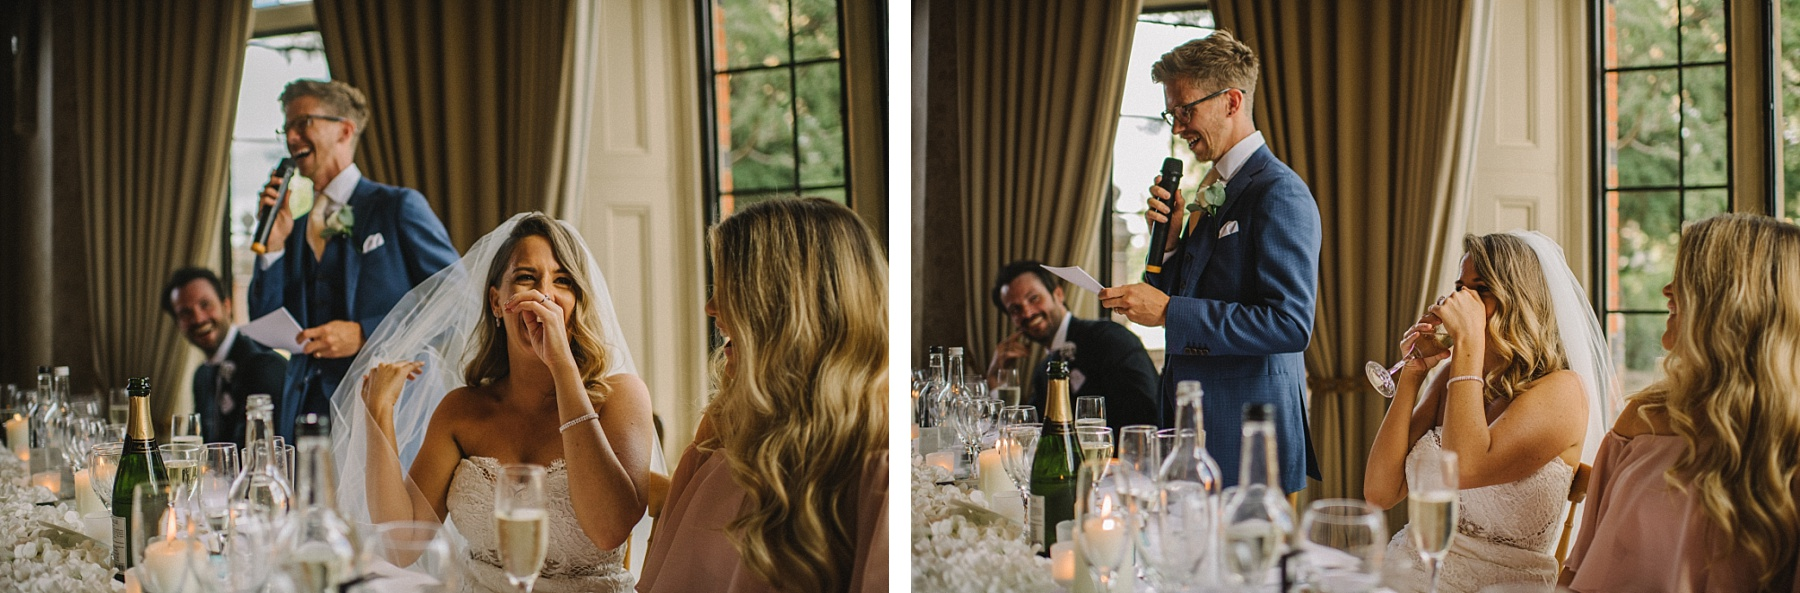 the wedding speeches at stylish wedding venue